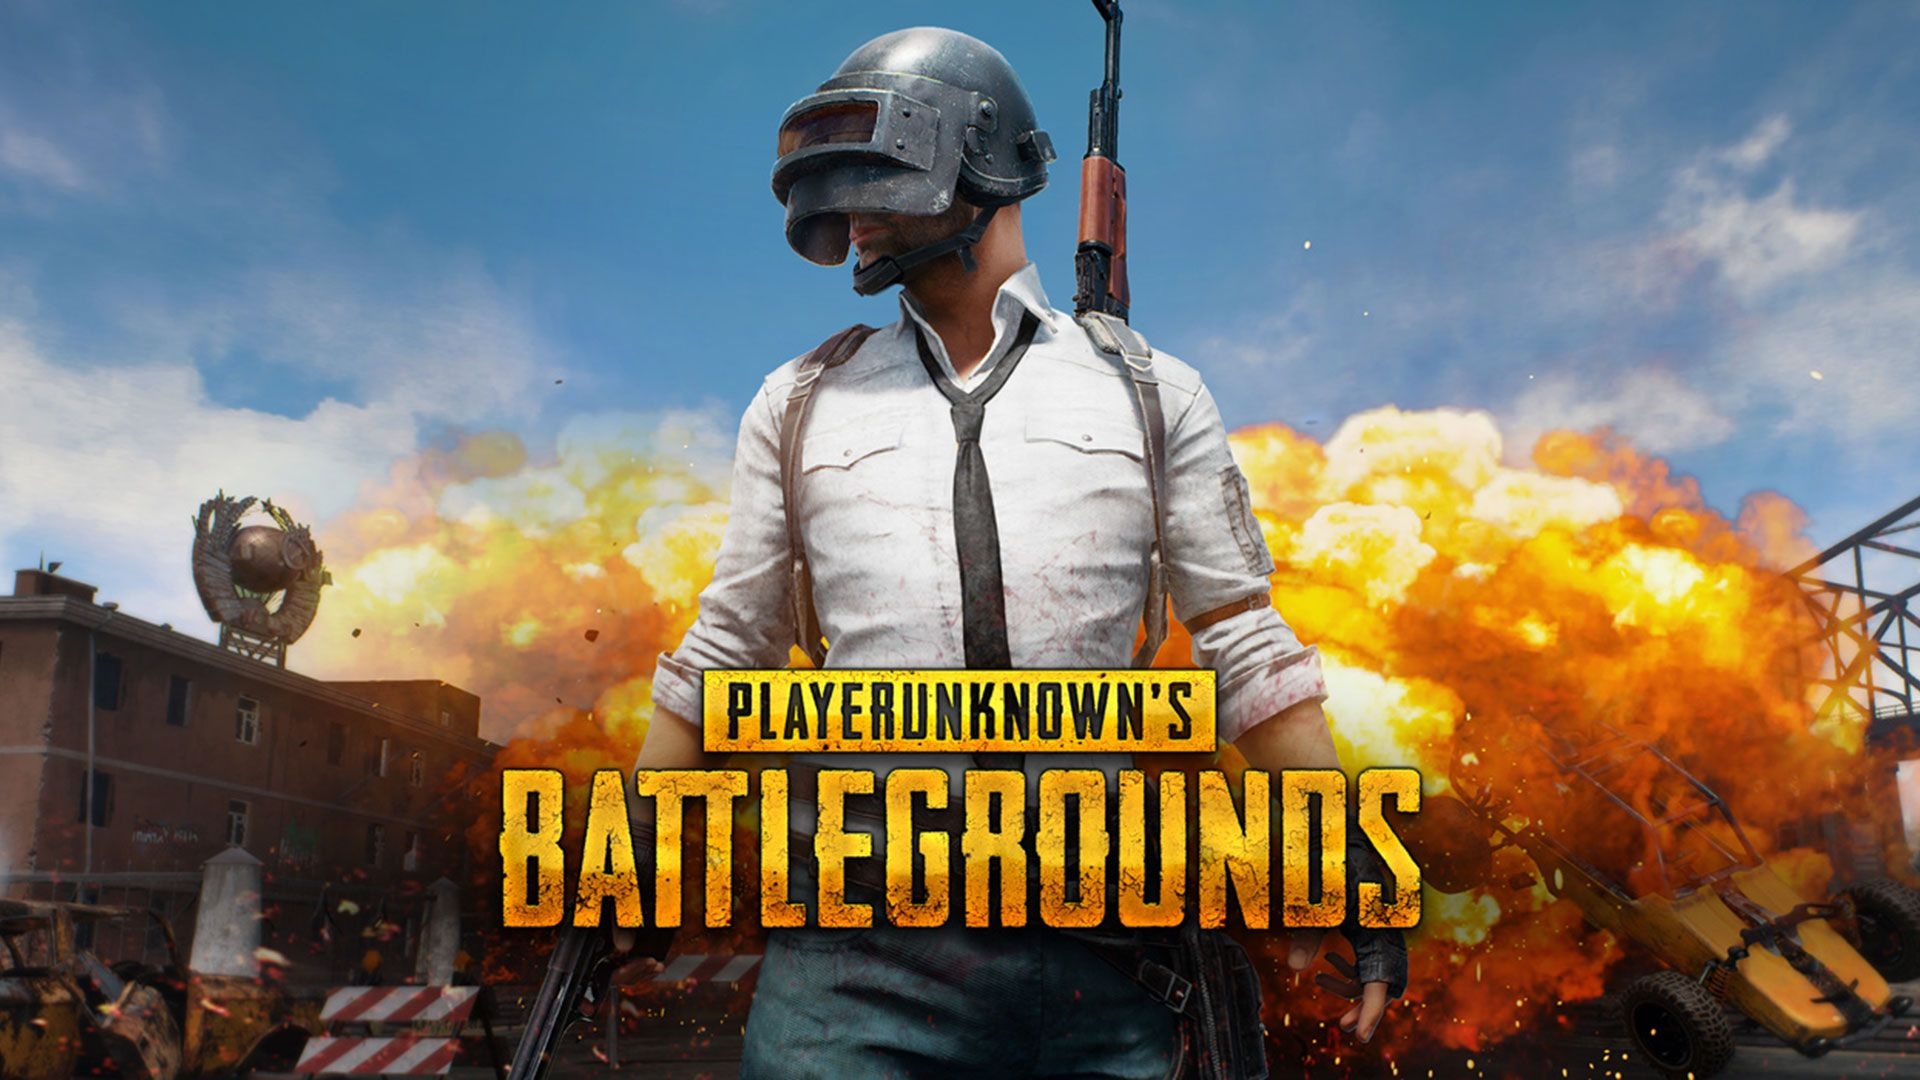 Get Pubg Wallpapers Full Hd On Wallpaper 1080p HD To Your